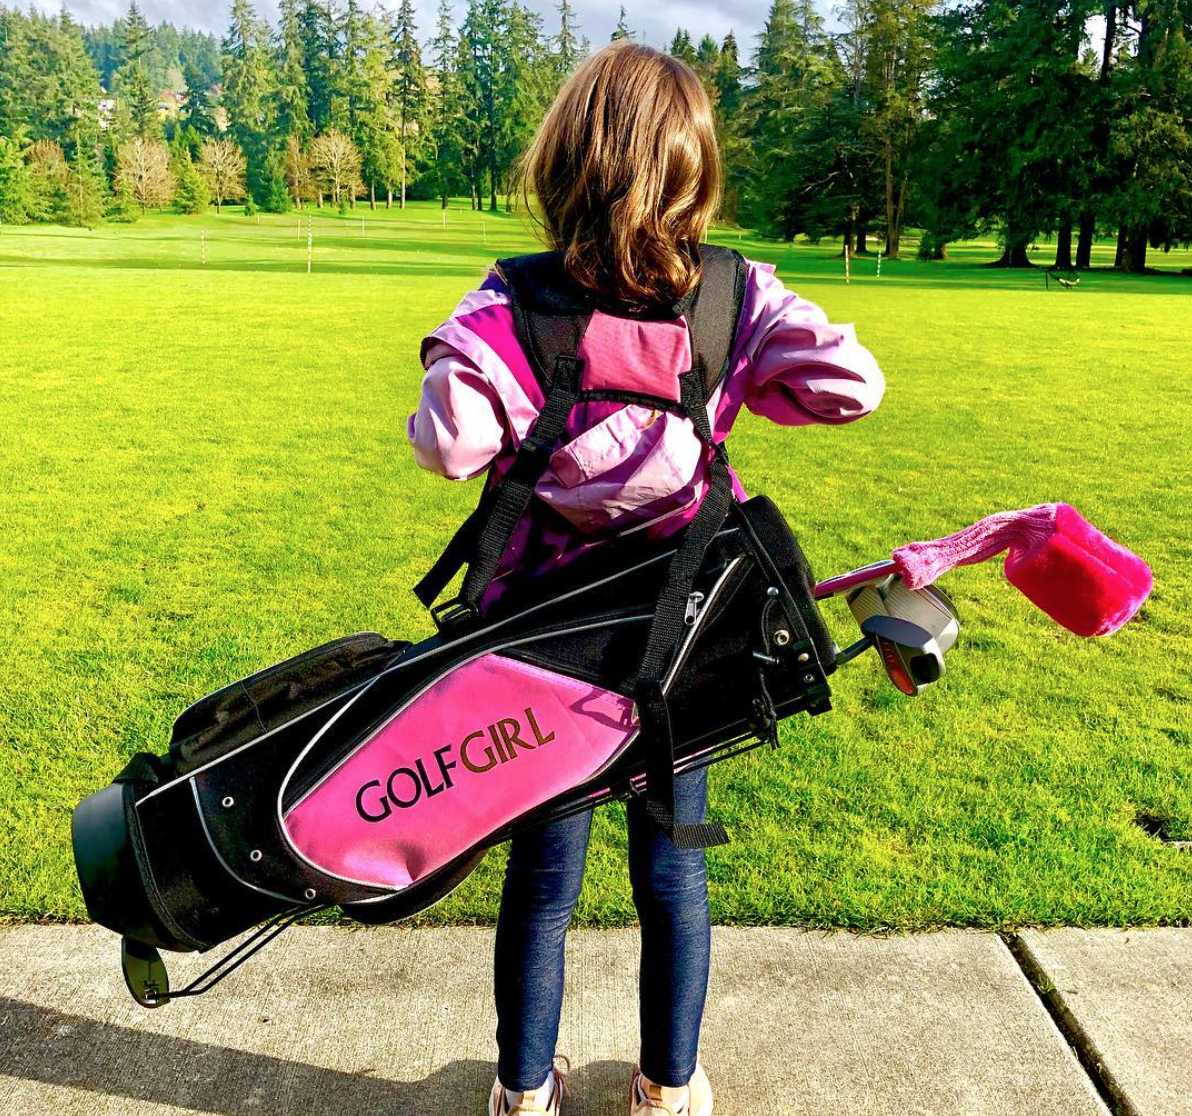 Daughter Riley loves playing golf with her family. (Image: Jason Mesnick)